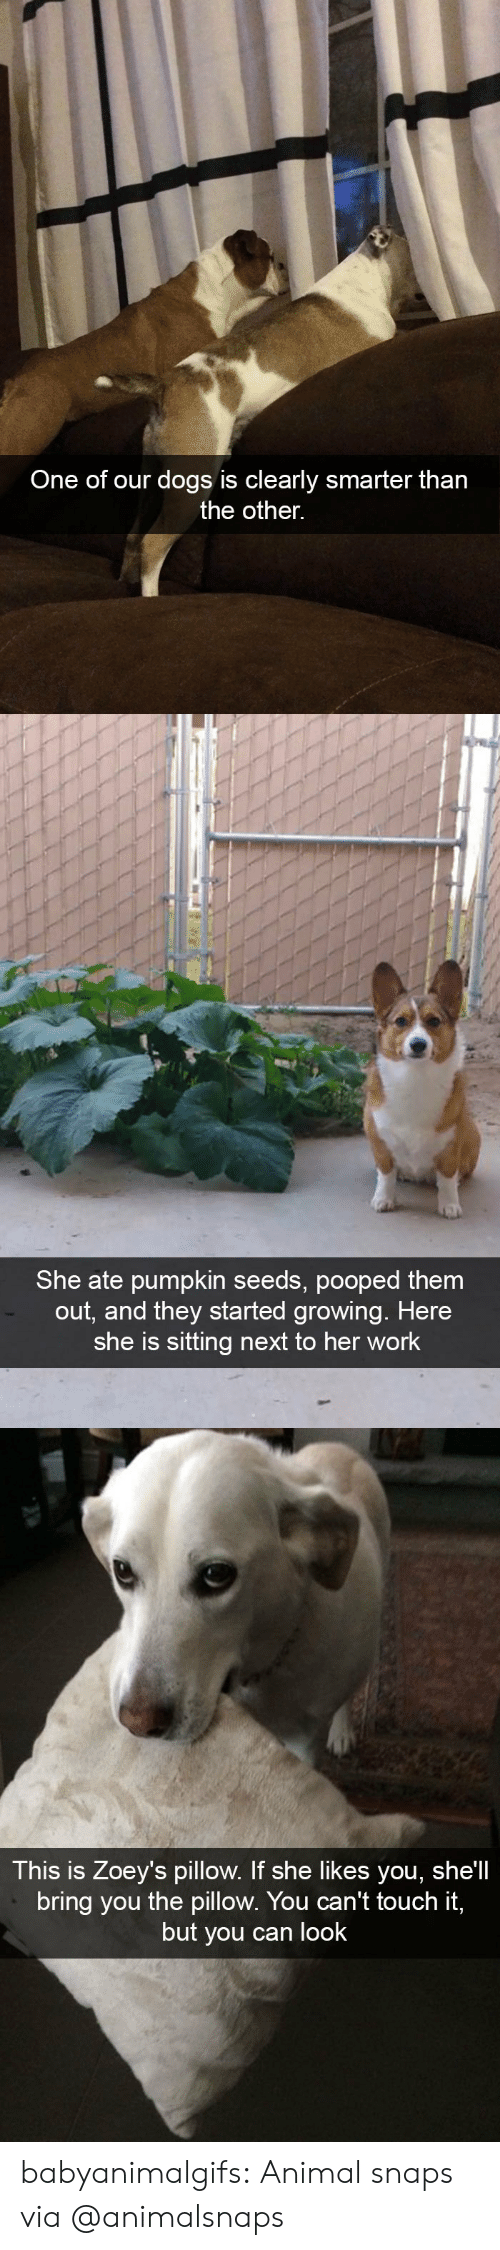 touch it: One of our dogs is clearly smarter tharn  the other.   She ate pumpkin seeds, pooped them  out, and they started growing. Here  she is sitting next to her work   This is Zoey's pillow. If she likes you, she'll  bring you the pillow. You can't touch it,  but you can look babyanimalgifs: Animal snaps via @animalsnaps